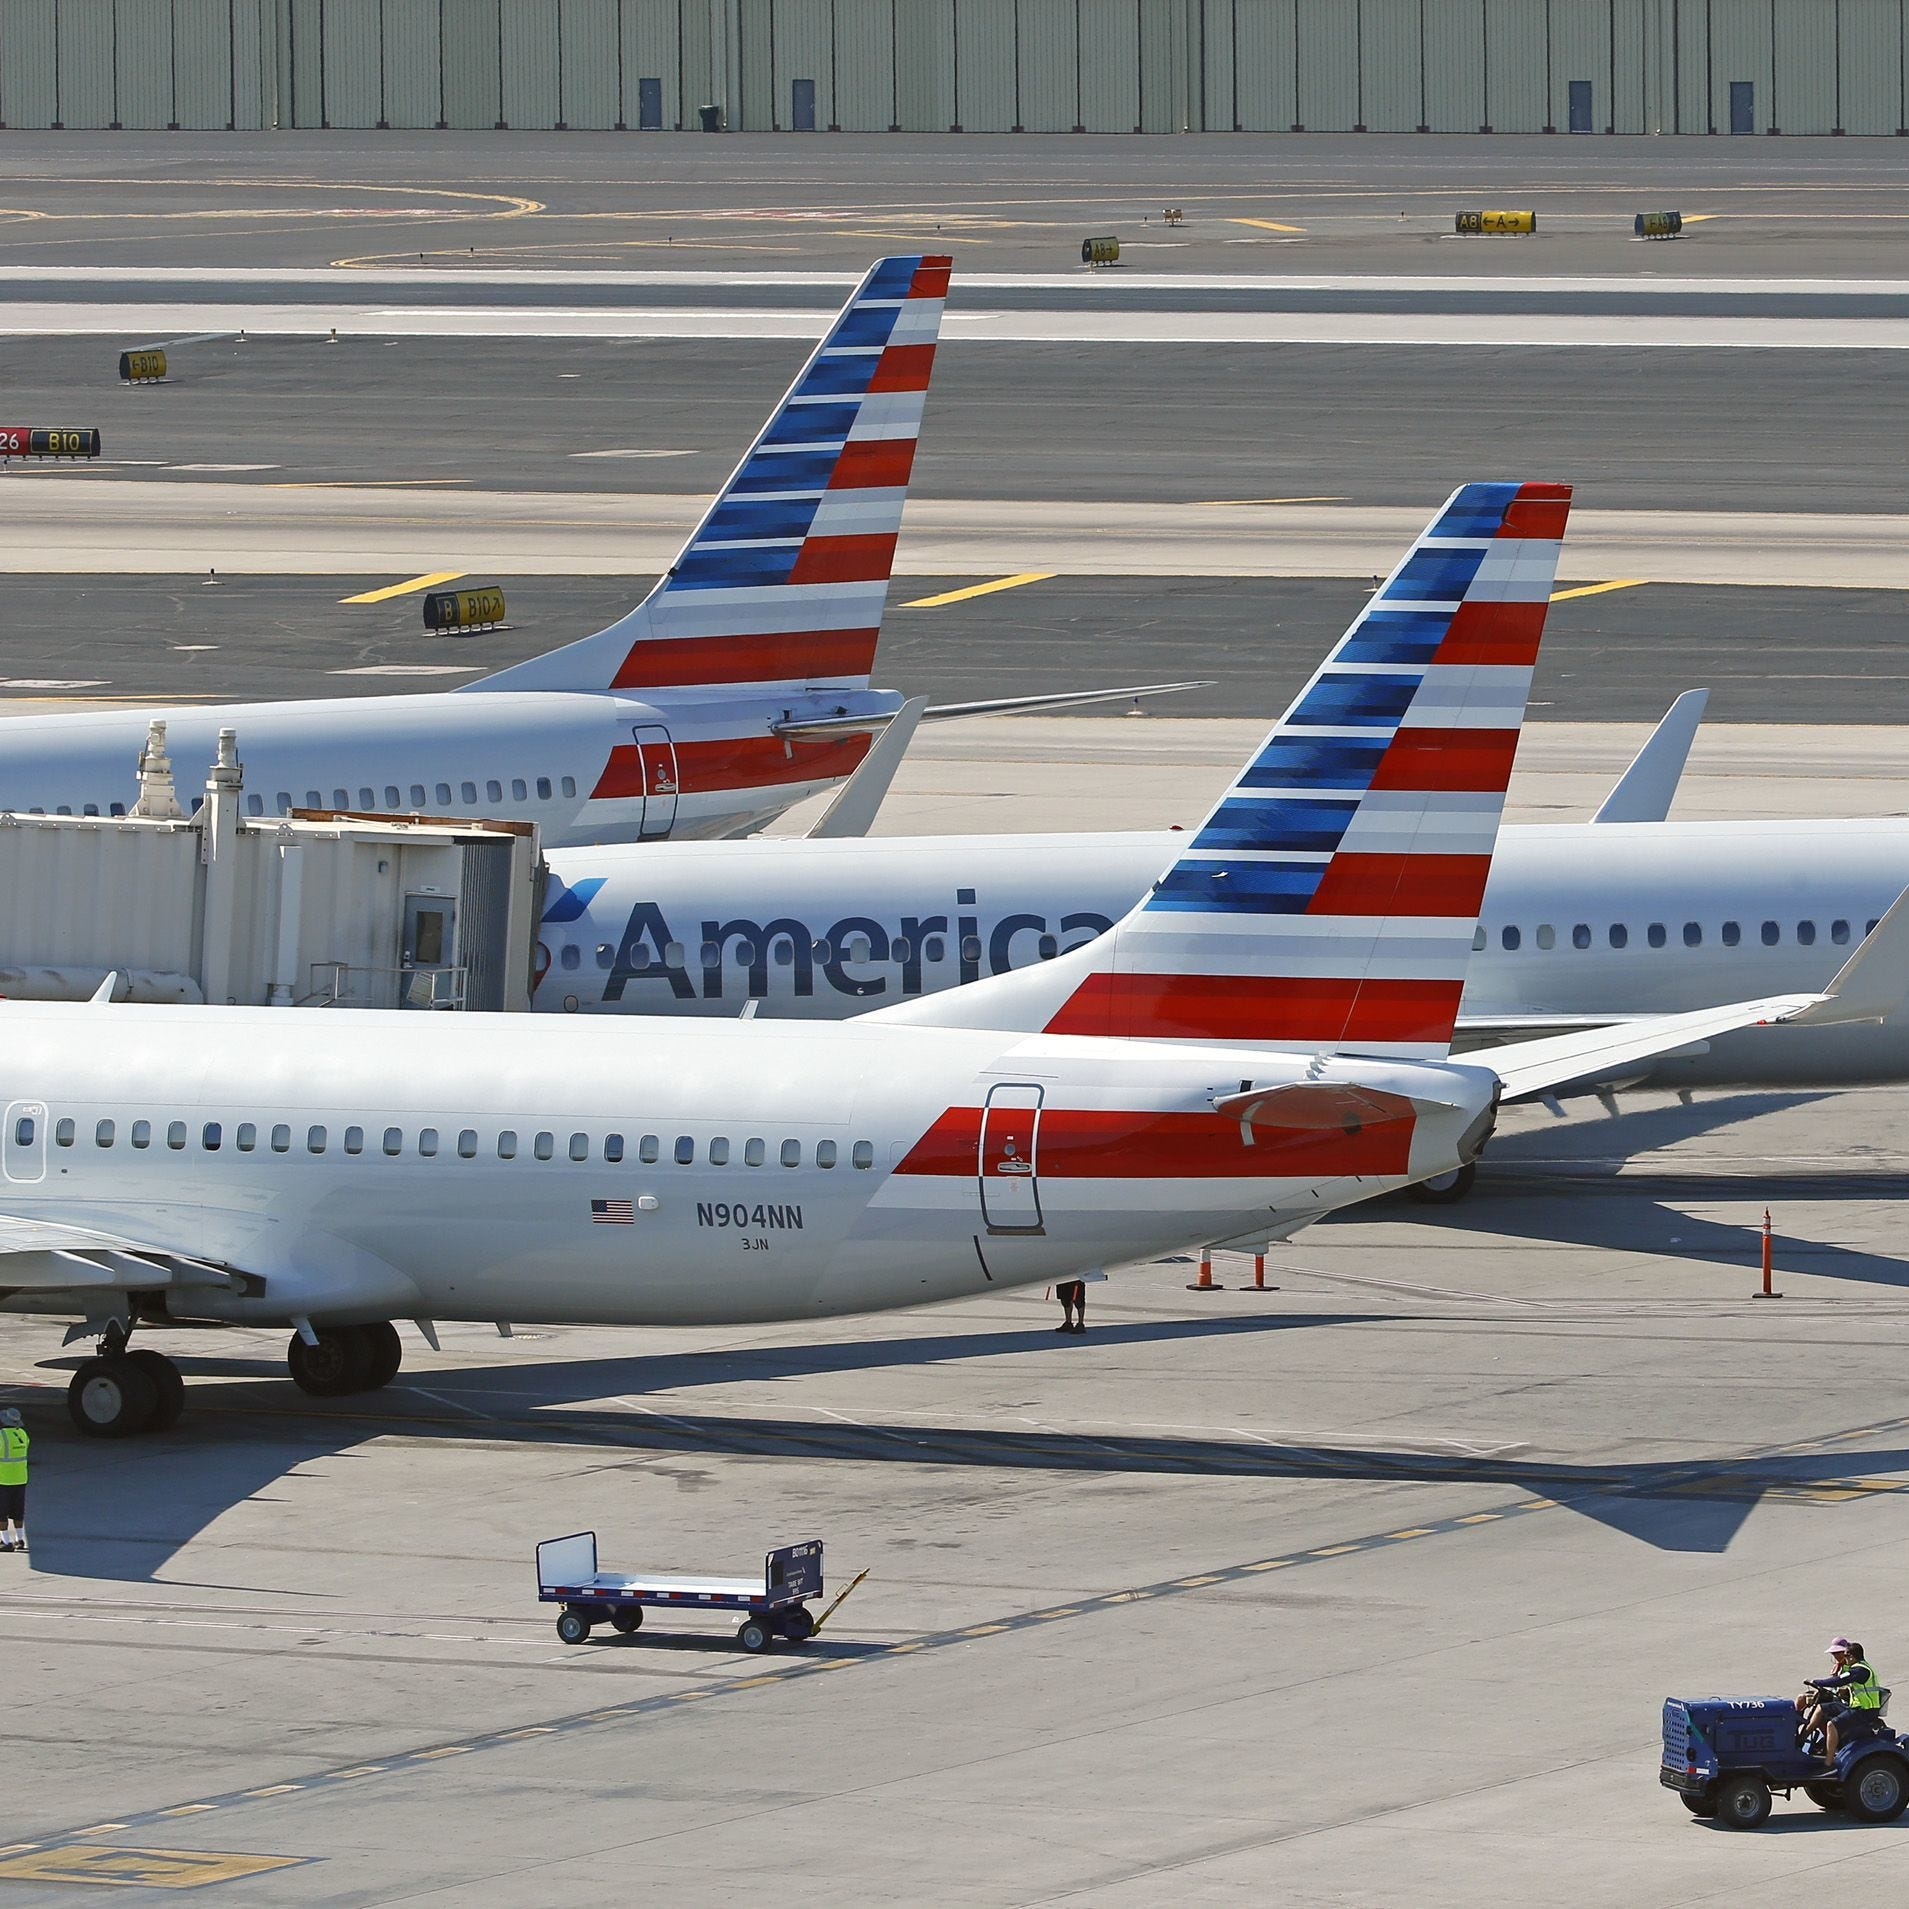 Flights bound for Phoenix diverted to Tucson due to high winds